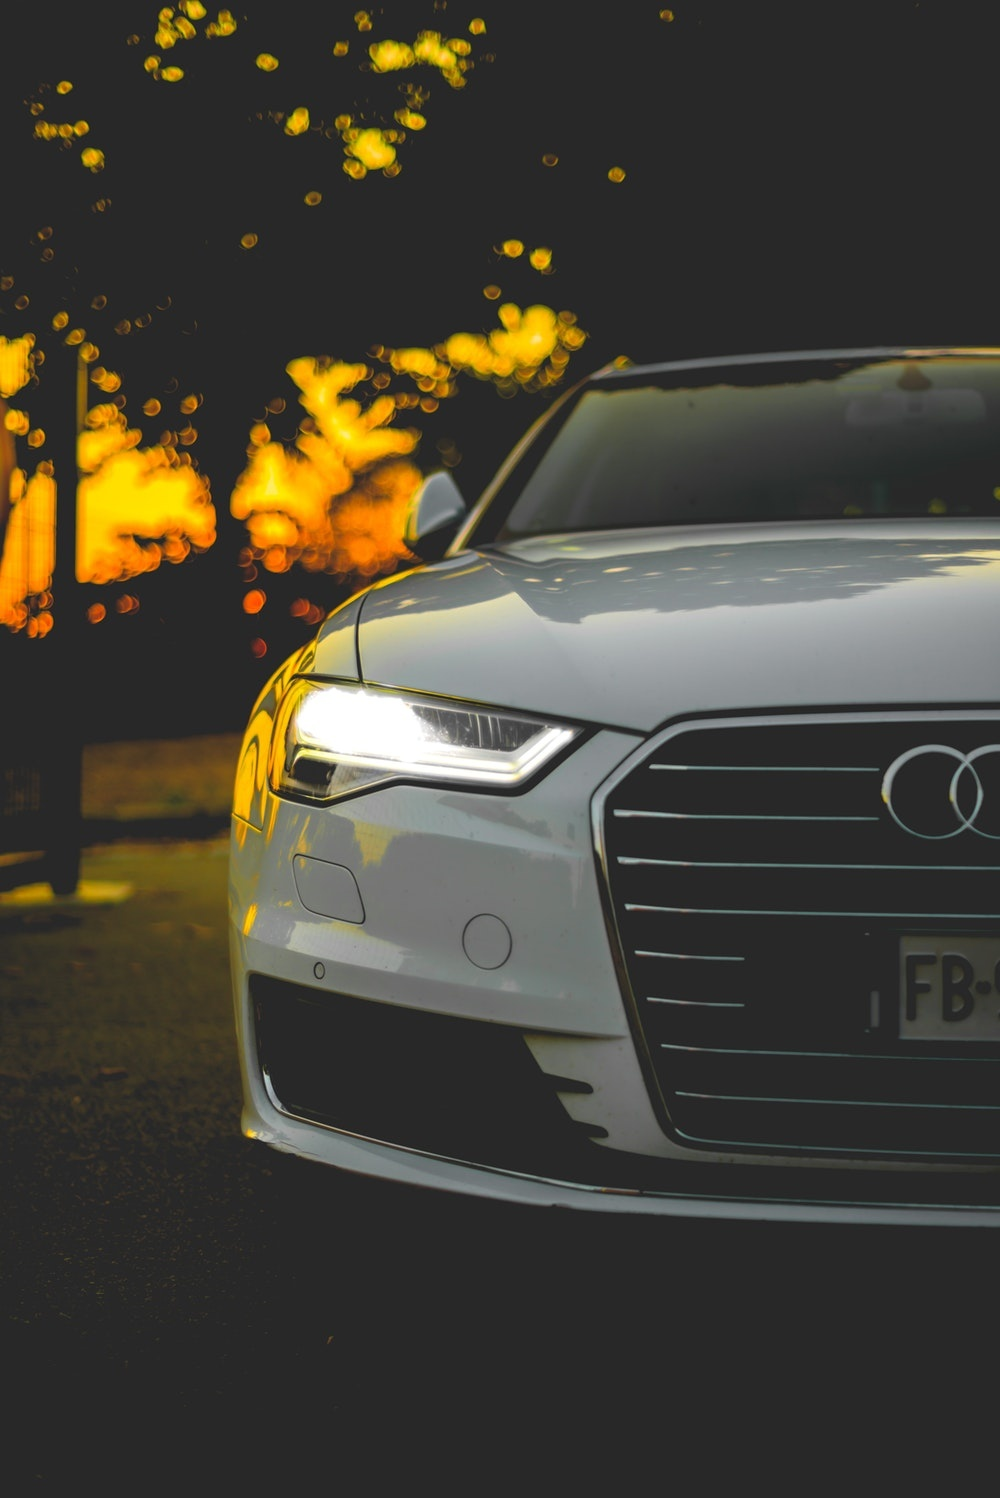 Audi Car Modified Beautiful 500 Audi Pictures Hd Download Free Images On Unsplash-2085 Of Inspirational Audi Car Modified